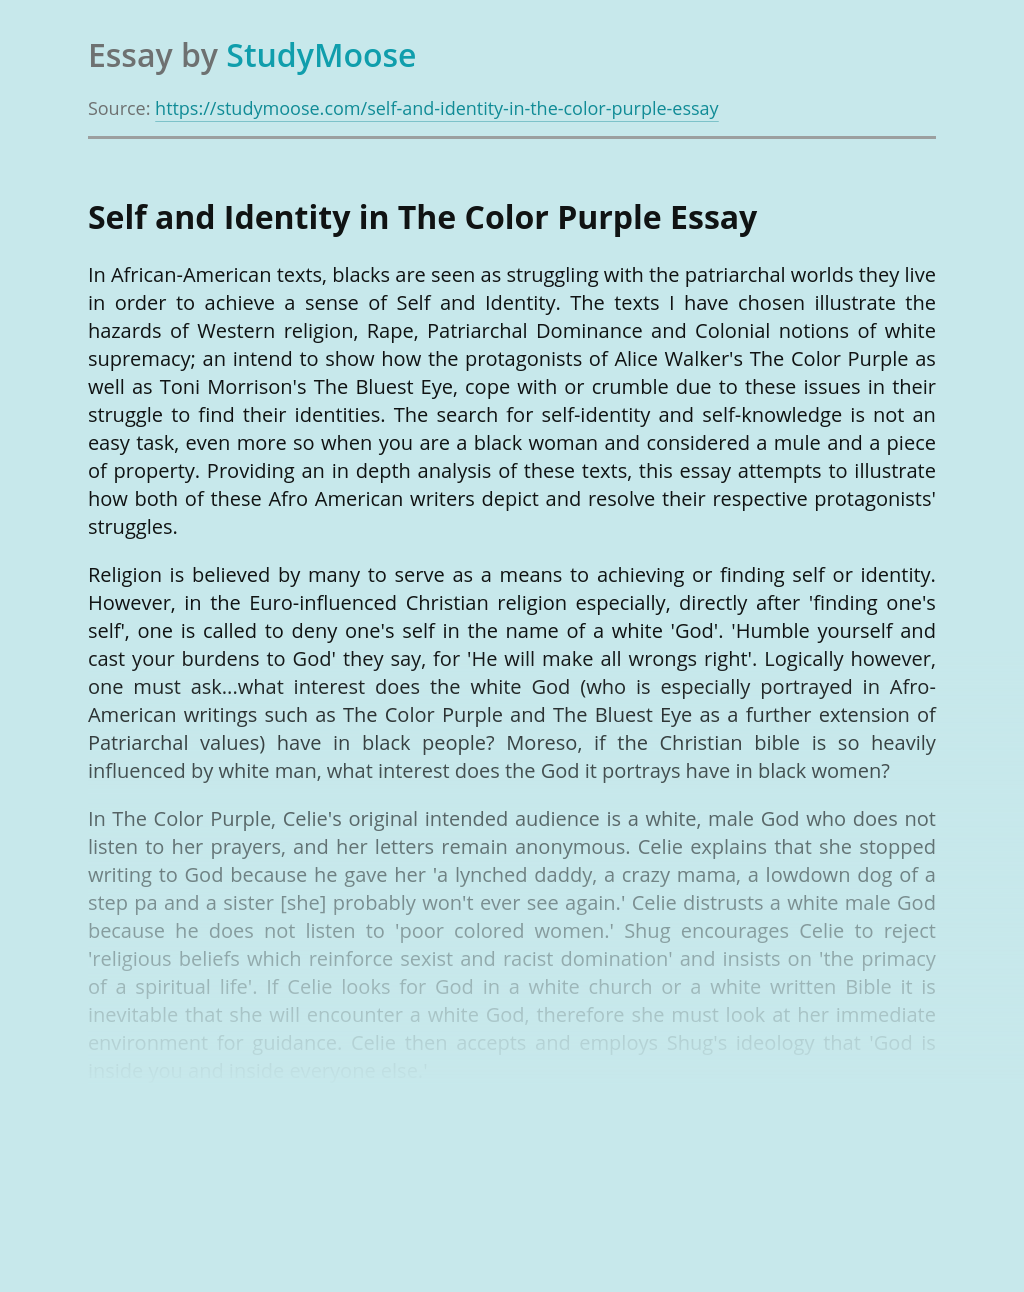 Self and Identity in The Color Purple